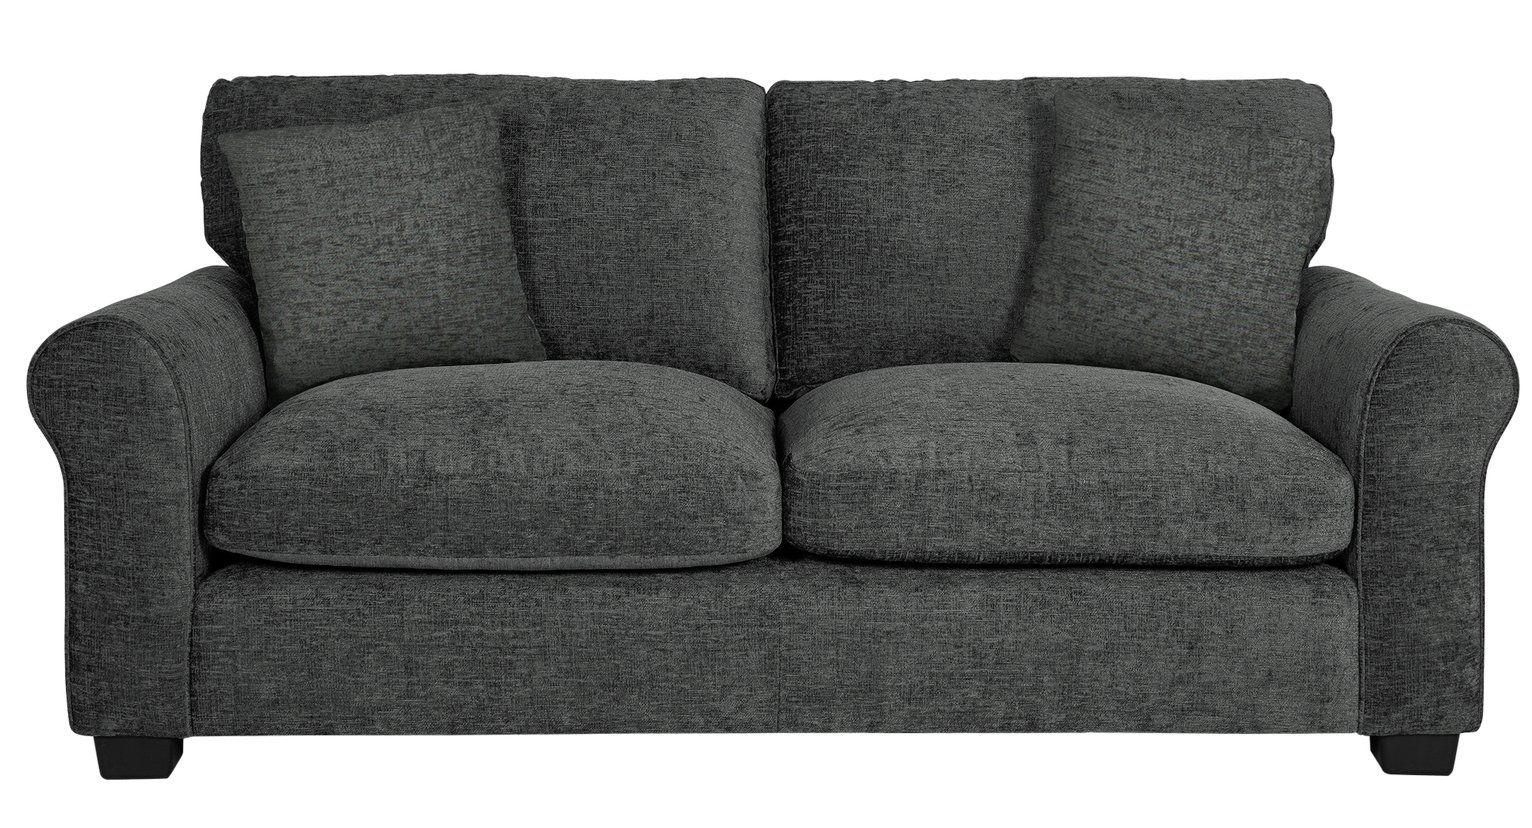 Argos Home Tammy 3 Seater Fabric Sofa Reviews